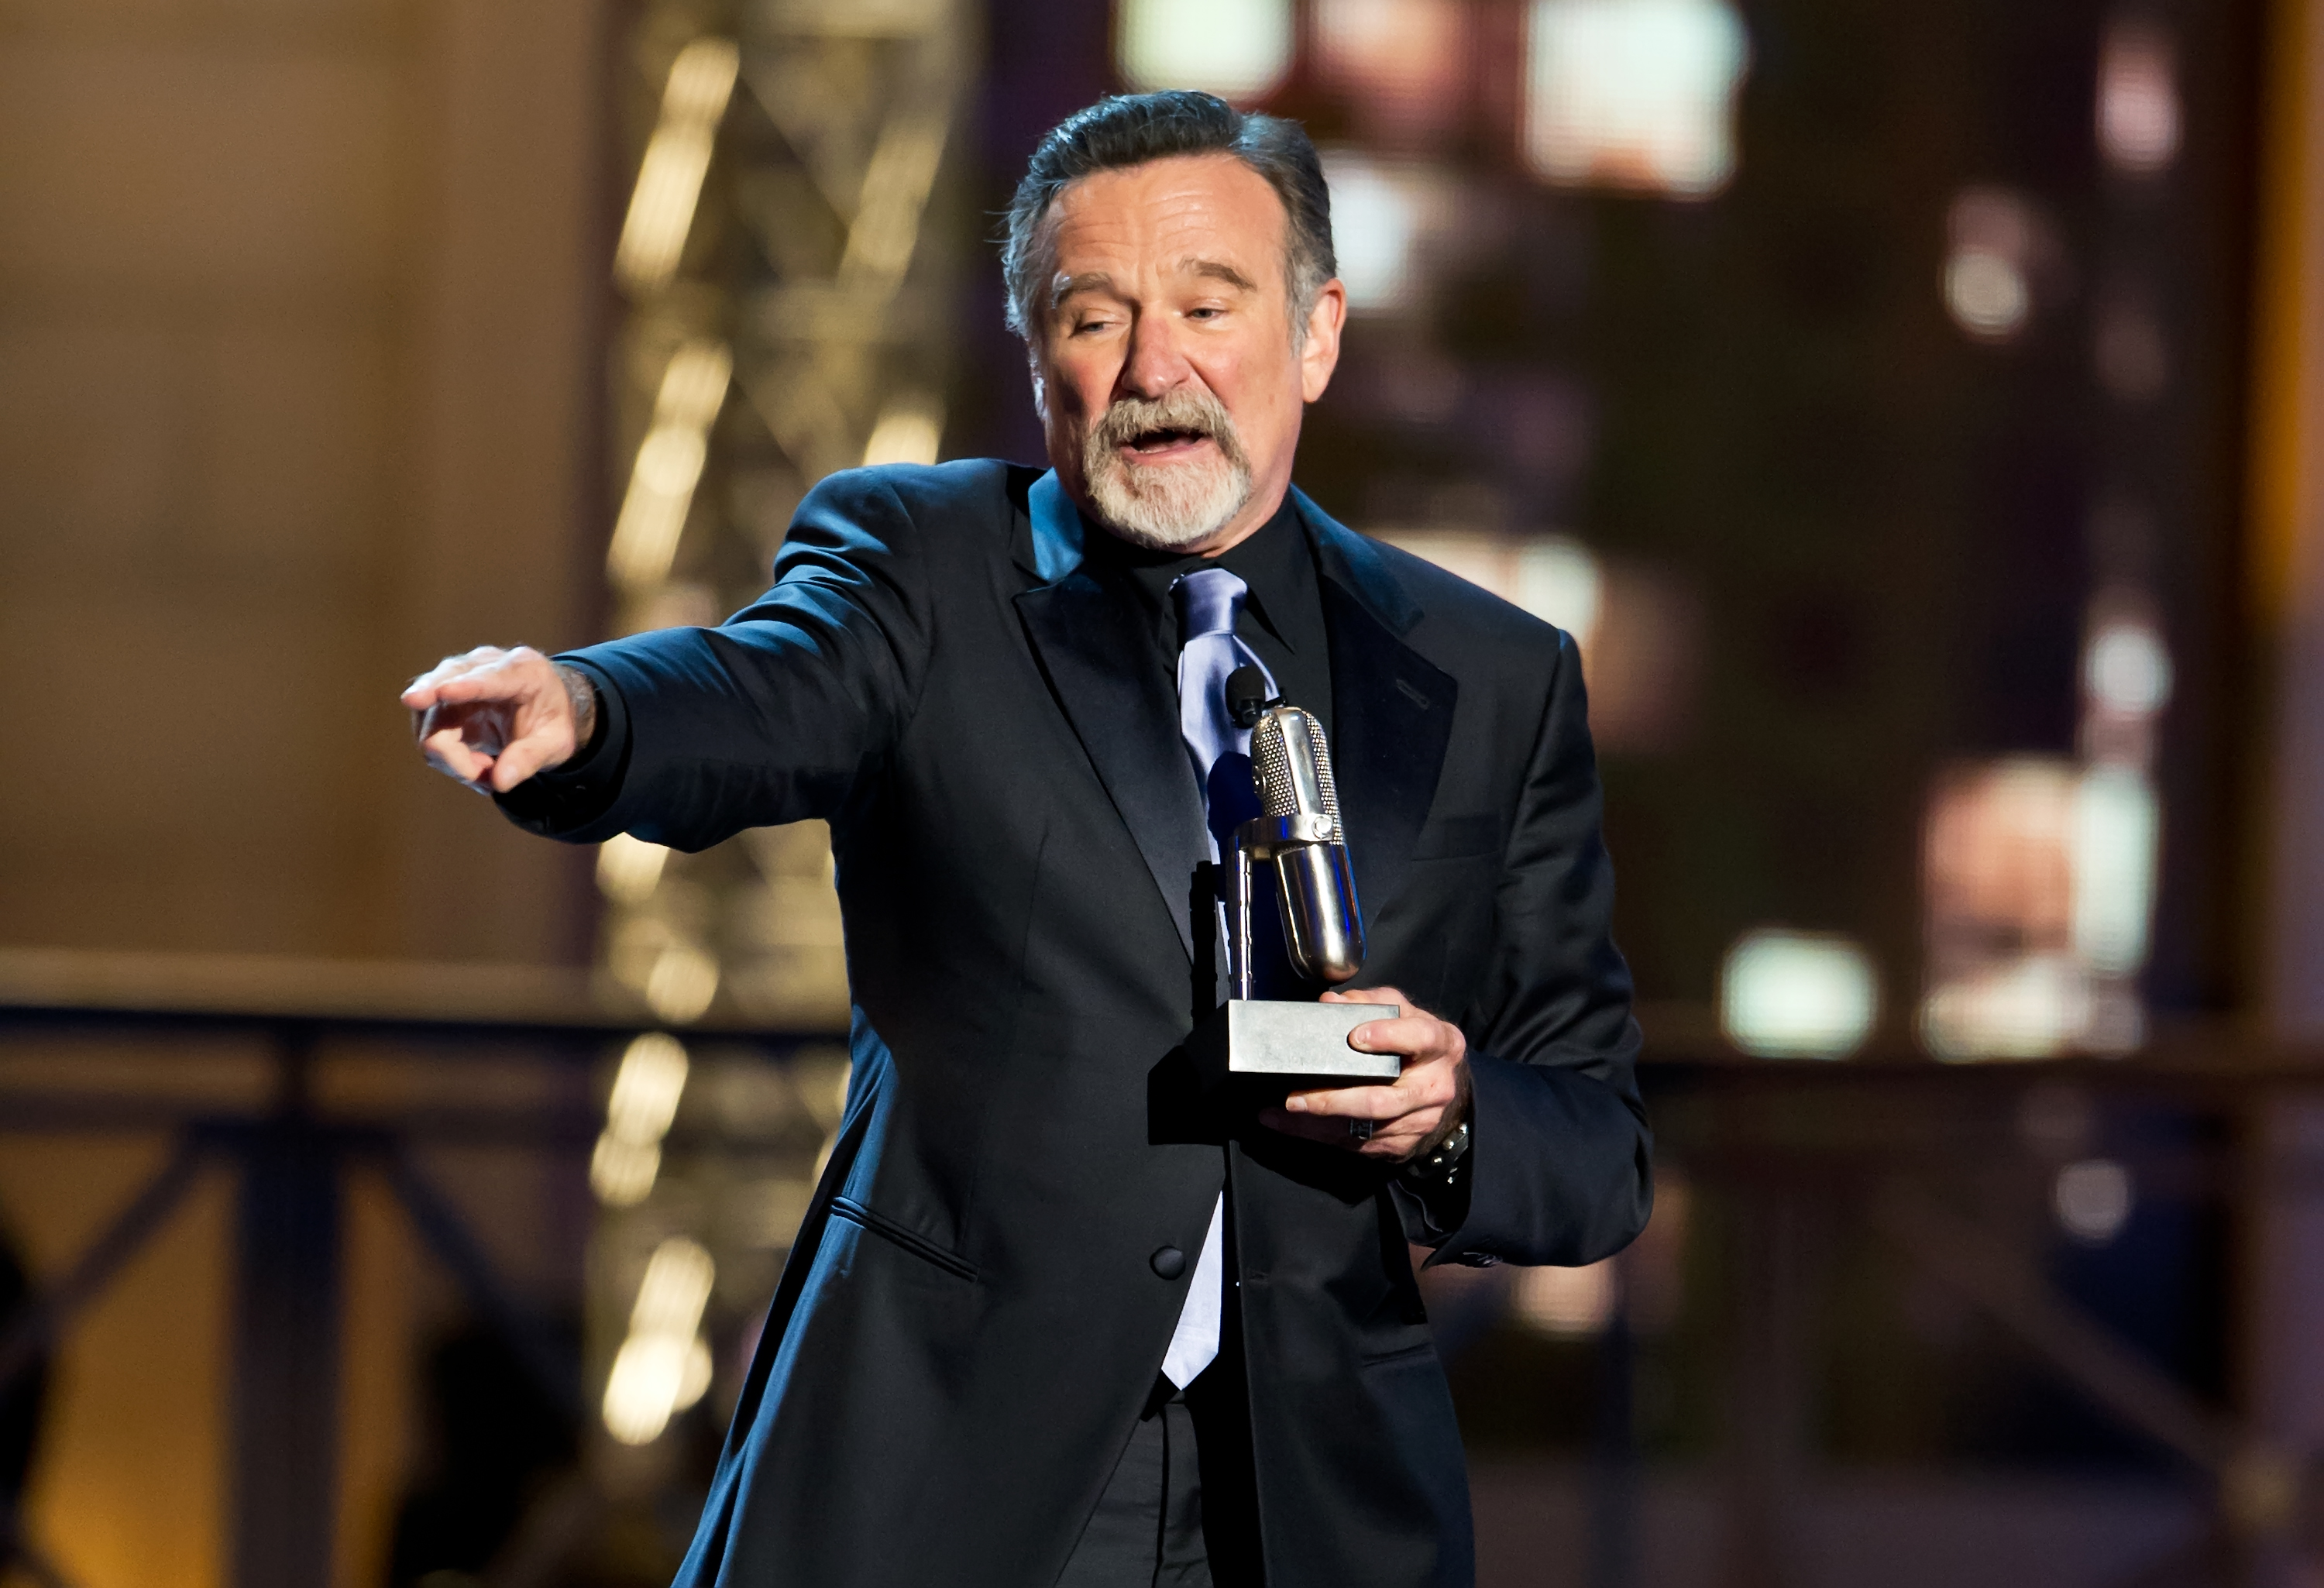 Comedian Robin Williams accepts an award onstage at The Comedy Awards 2012 at Hammerstein Ballroom on April 28, 2012 in New York City.